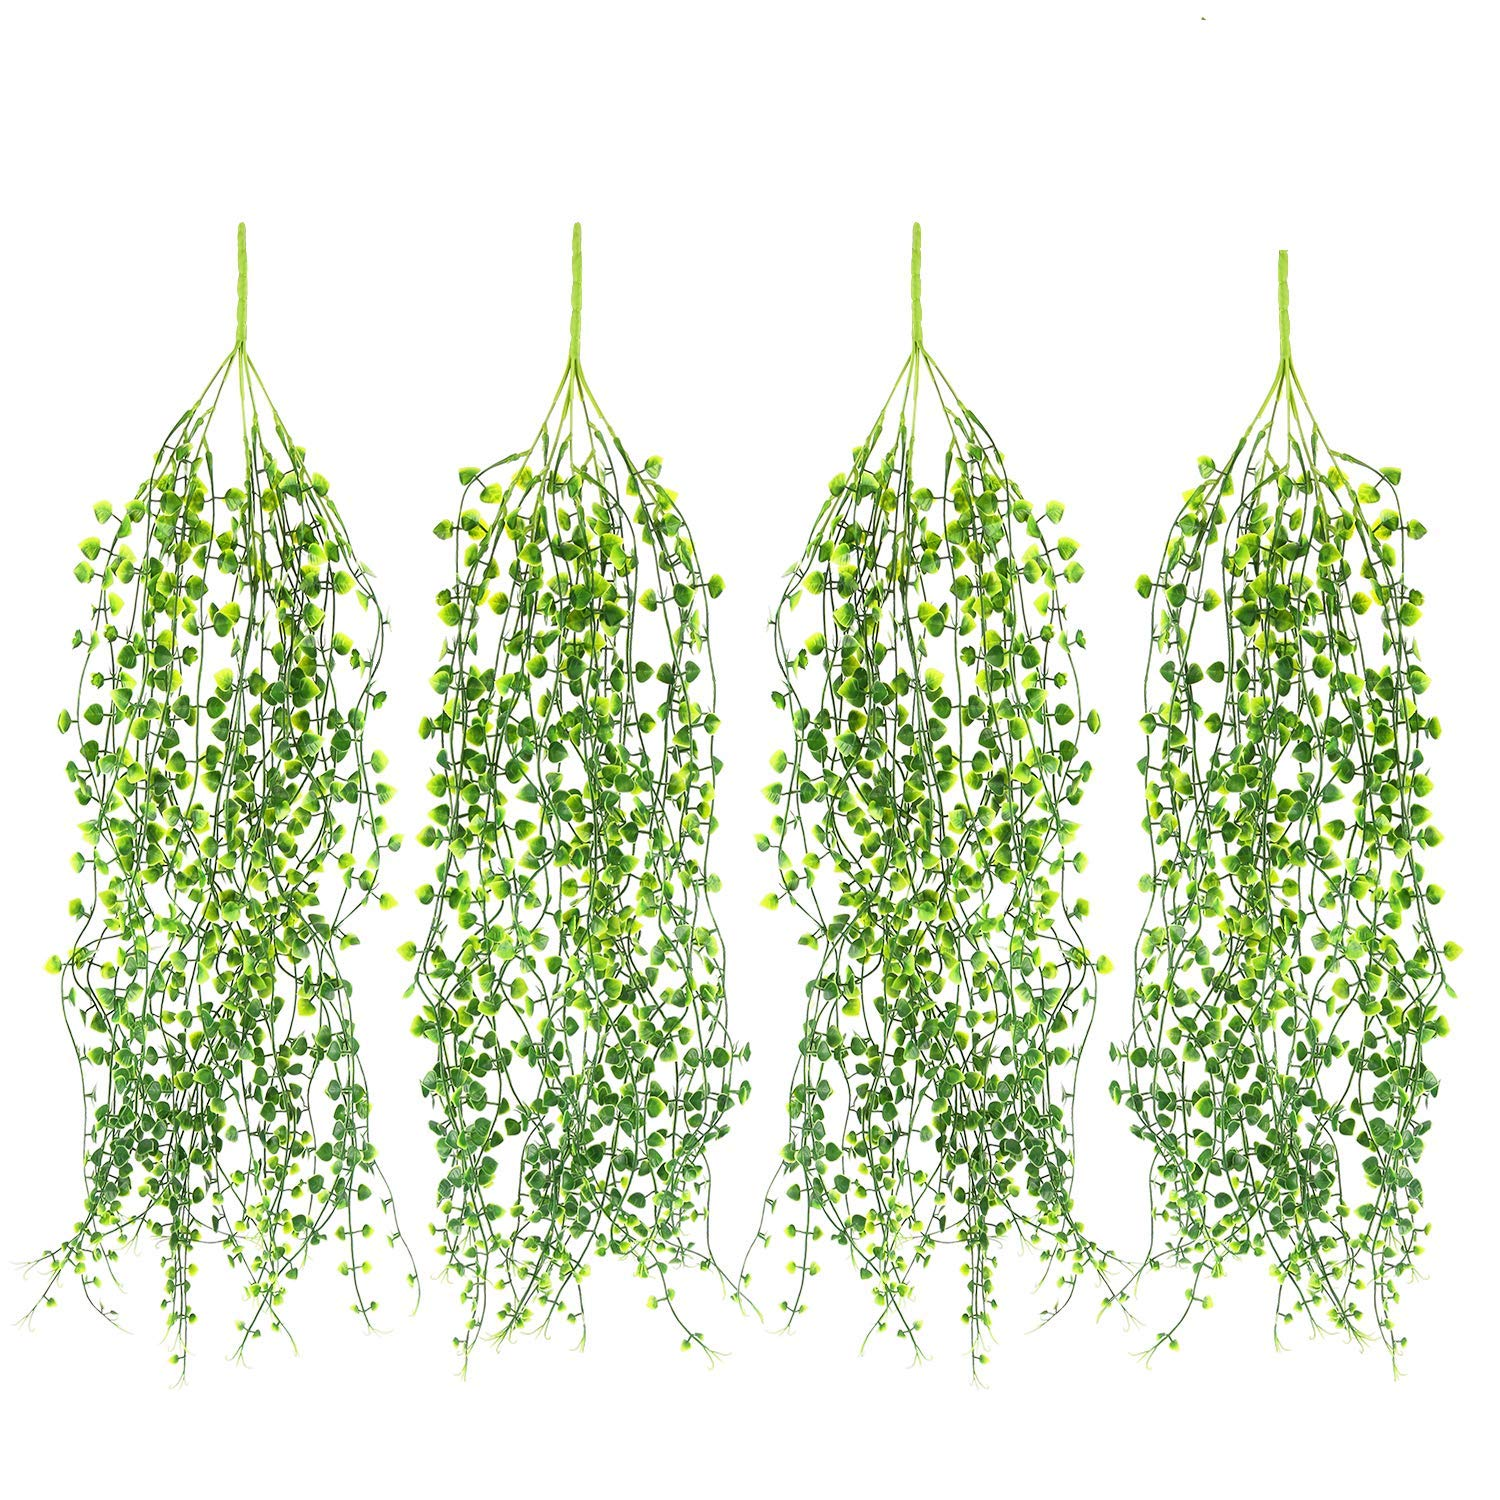 Artificial Ivy Fake Hanging Vine Plants Decor Plastic Greenery for Home Hotel Office Kitchen Wedding Party Garden Craft Art Decor Hanging Basket (Pack of 4PCS)